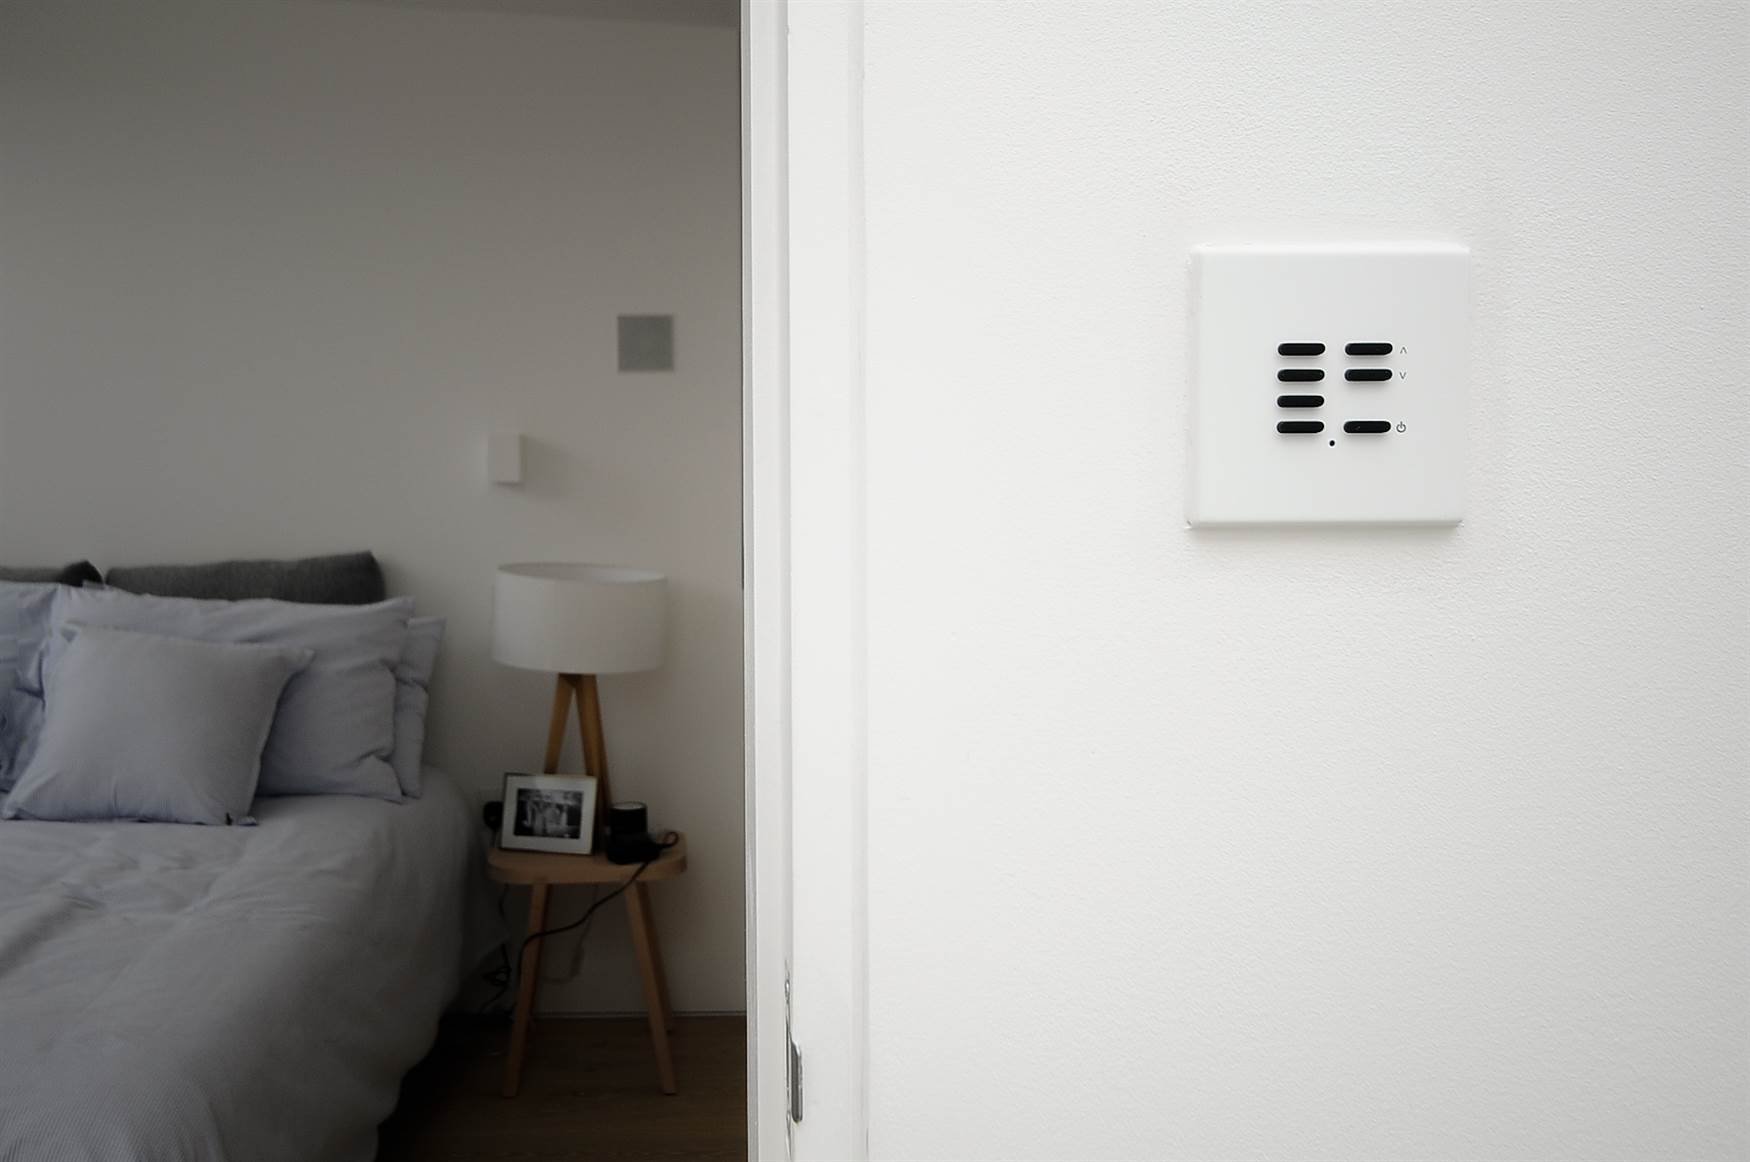 7 button Wise Vogue switch in bedroom